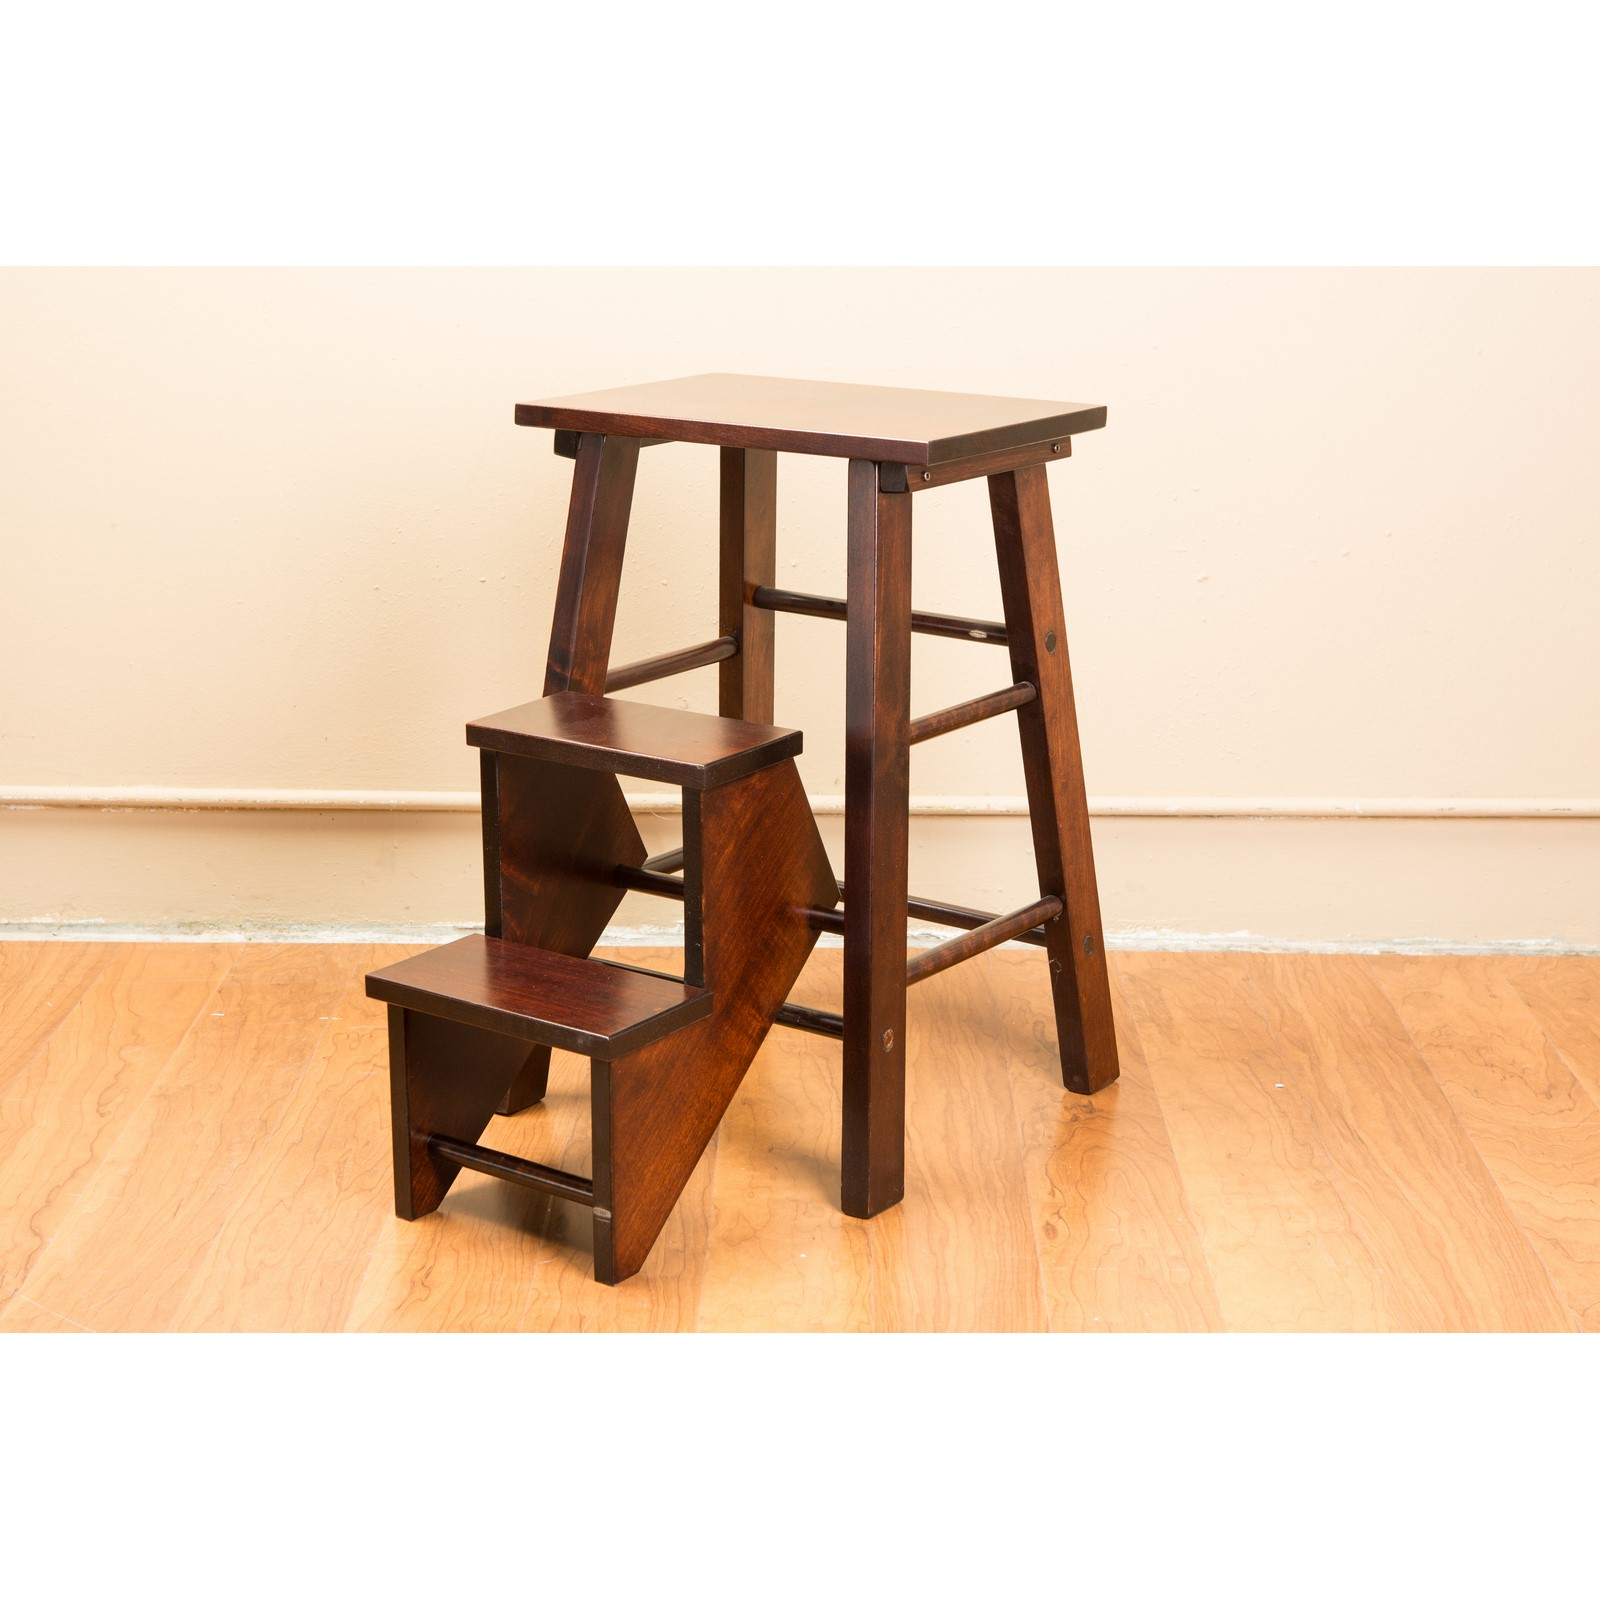 Creative Wood Design Fold Out Step Stool Stewart Roth